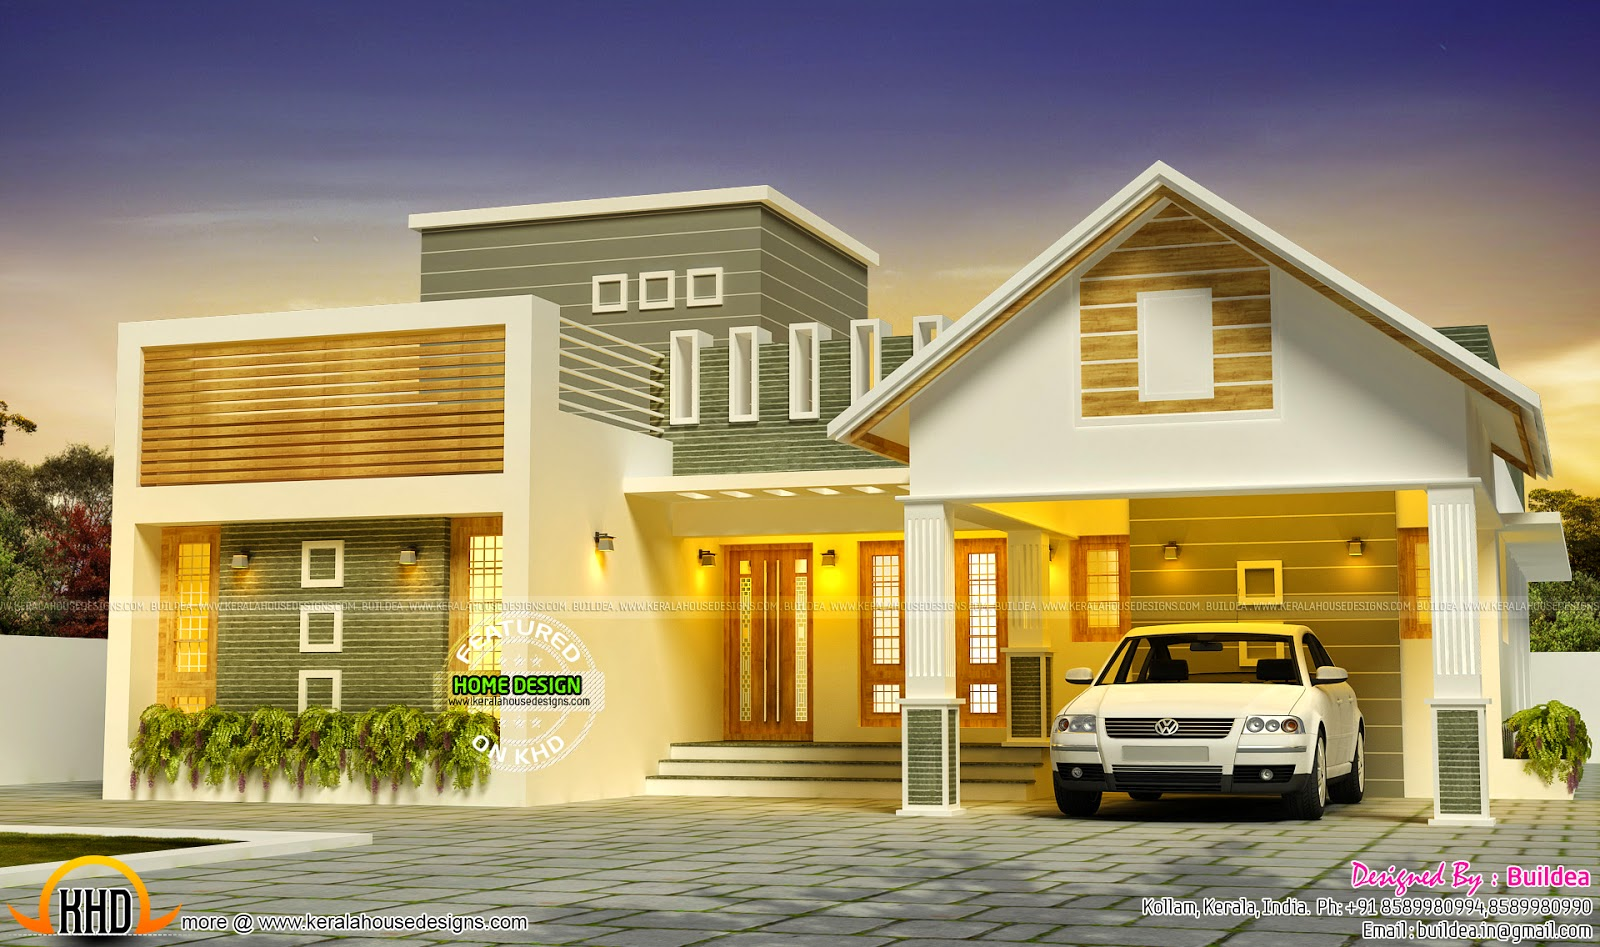 Awesome dream home design kerala home design and floor plans for Dream home kerala